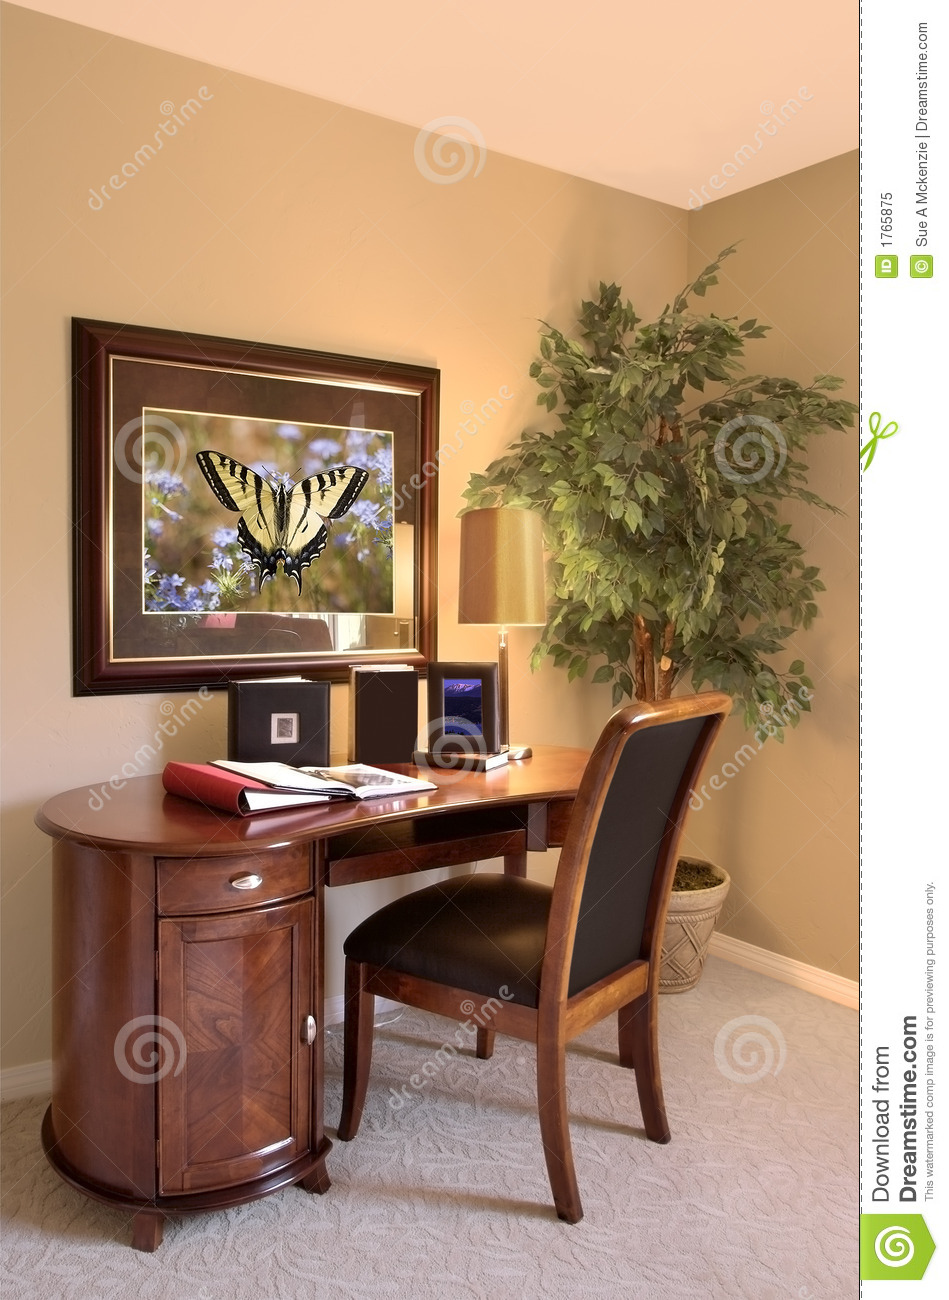 Interior Office Desk and Chair